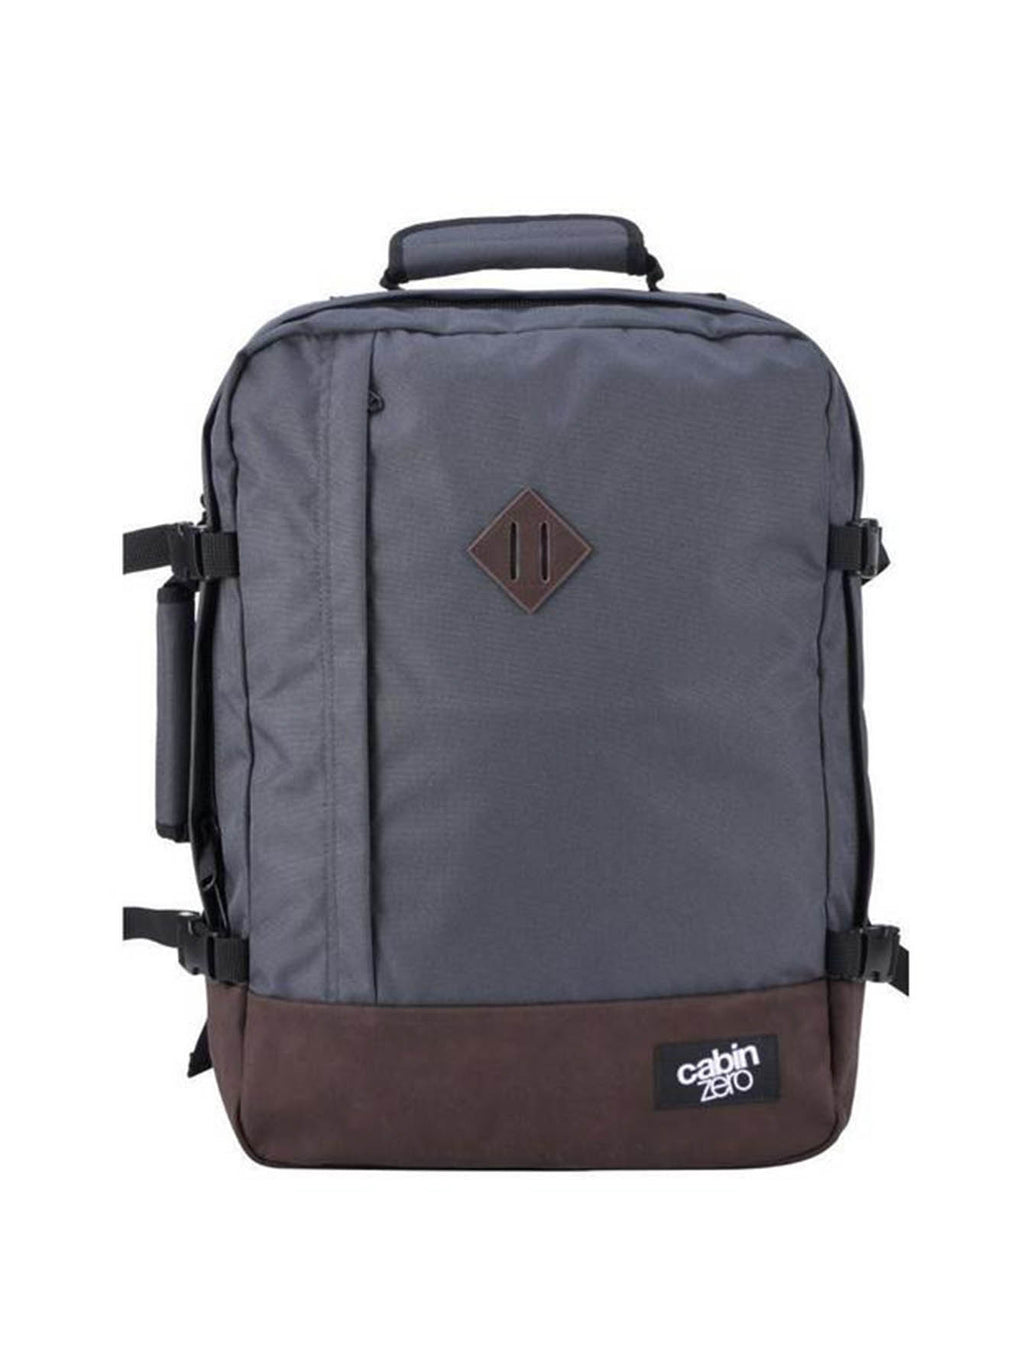 Cabinzero Vintage 44L in Original Grey Color